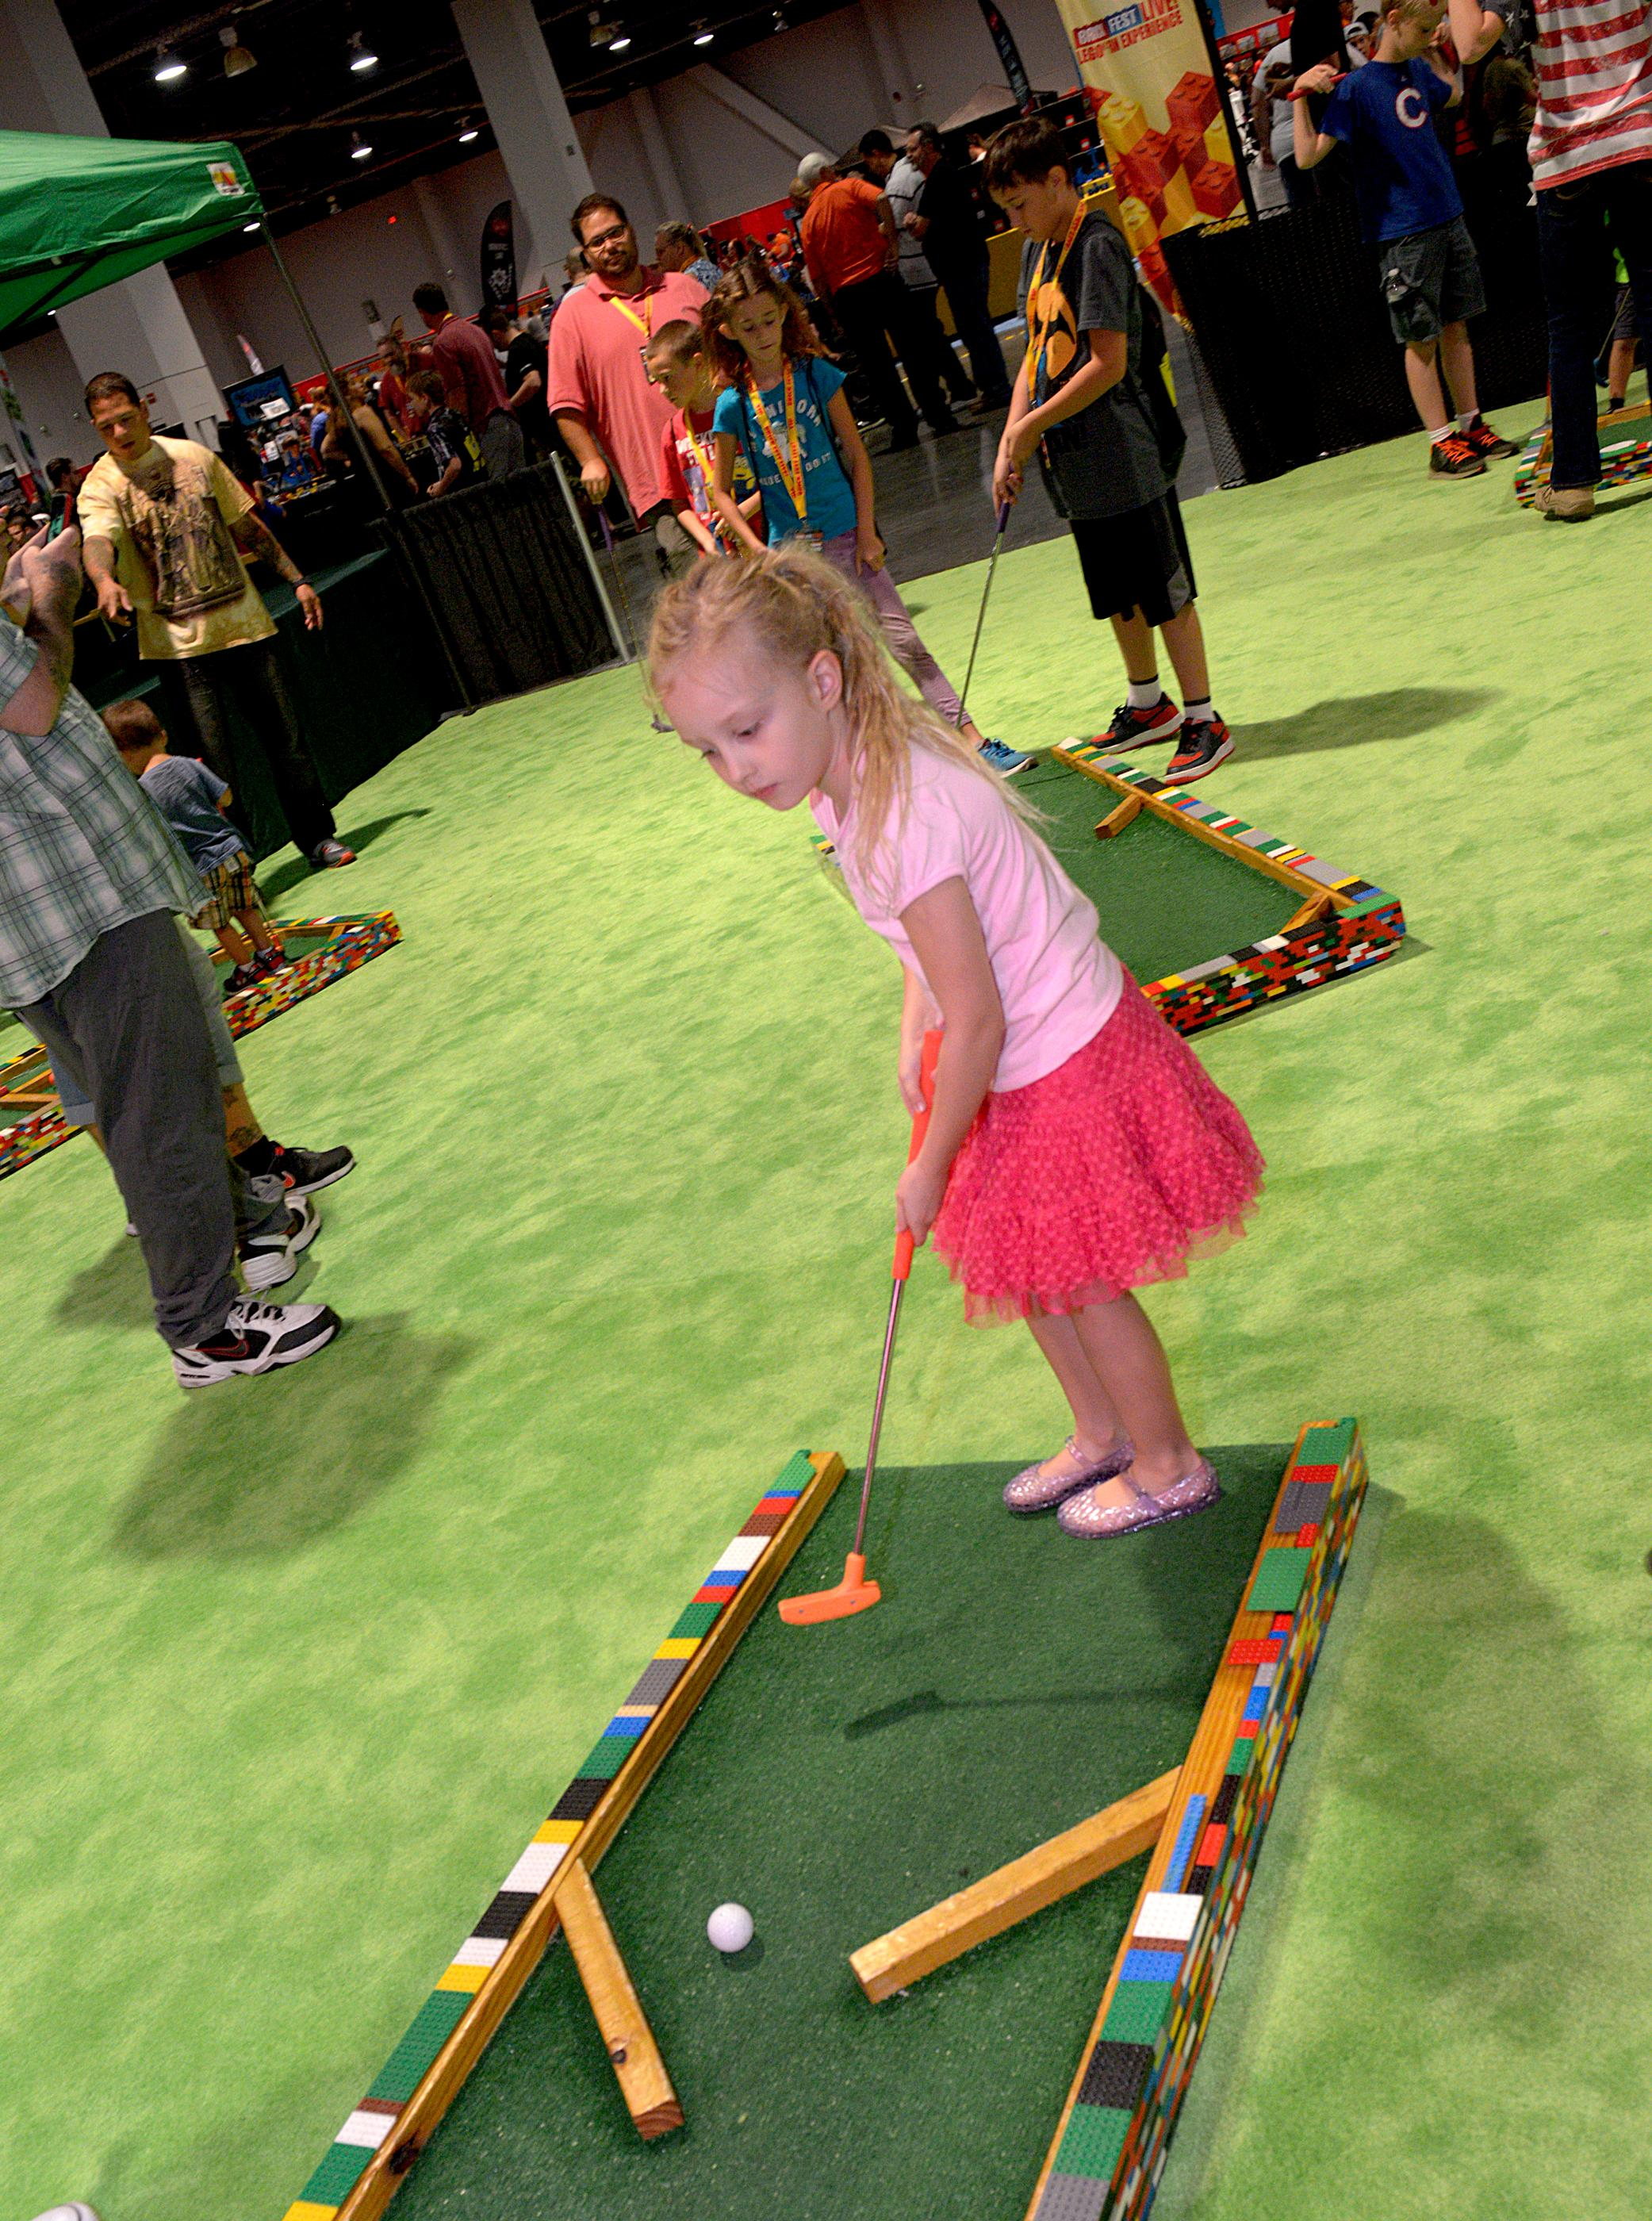 Kids get to play minature golf during the Brick Fest Live Lego Fan Experience at the Las Vegas Convention Center, September 9, 2017. [Glenn Pinkerton/Las Vegas News Bureau]